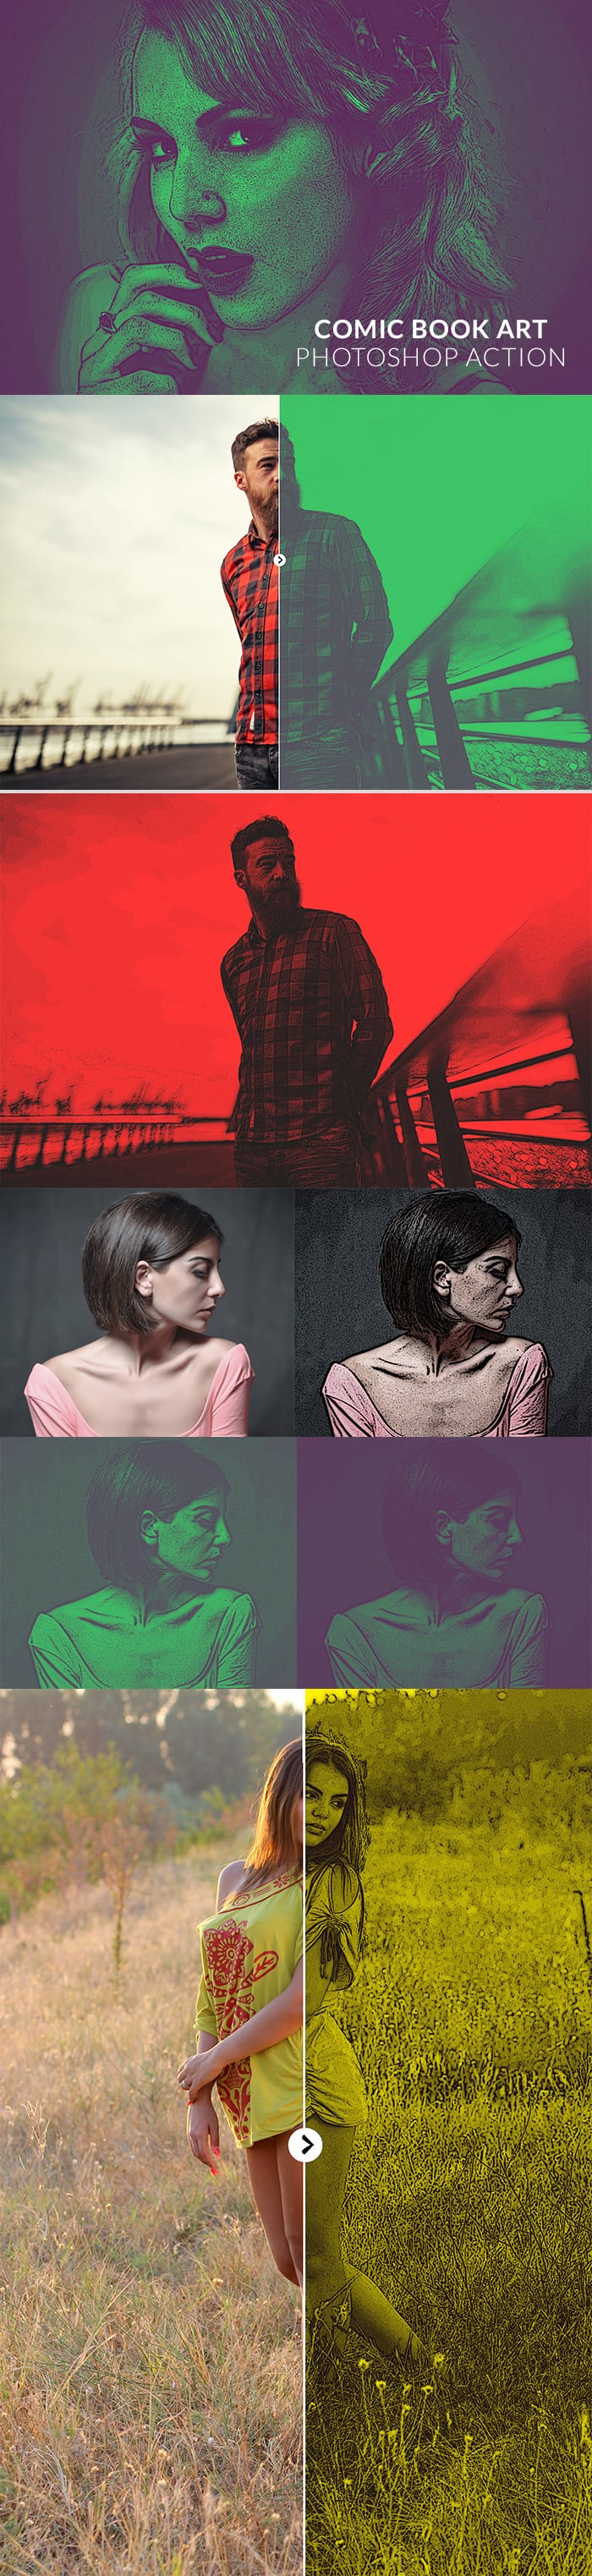 Photoshop Actions for Photographers. $9 Only! - 700px comic book art